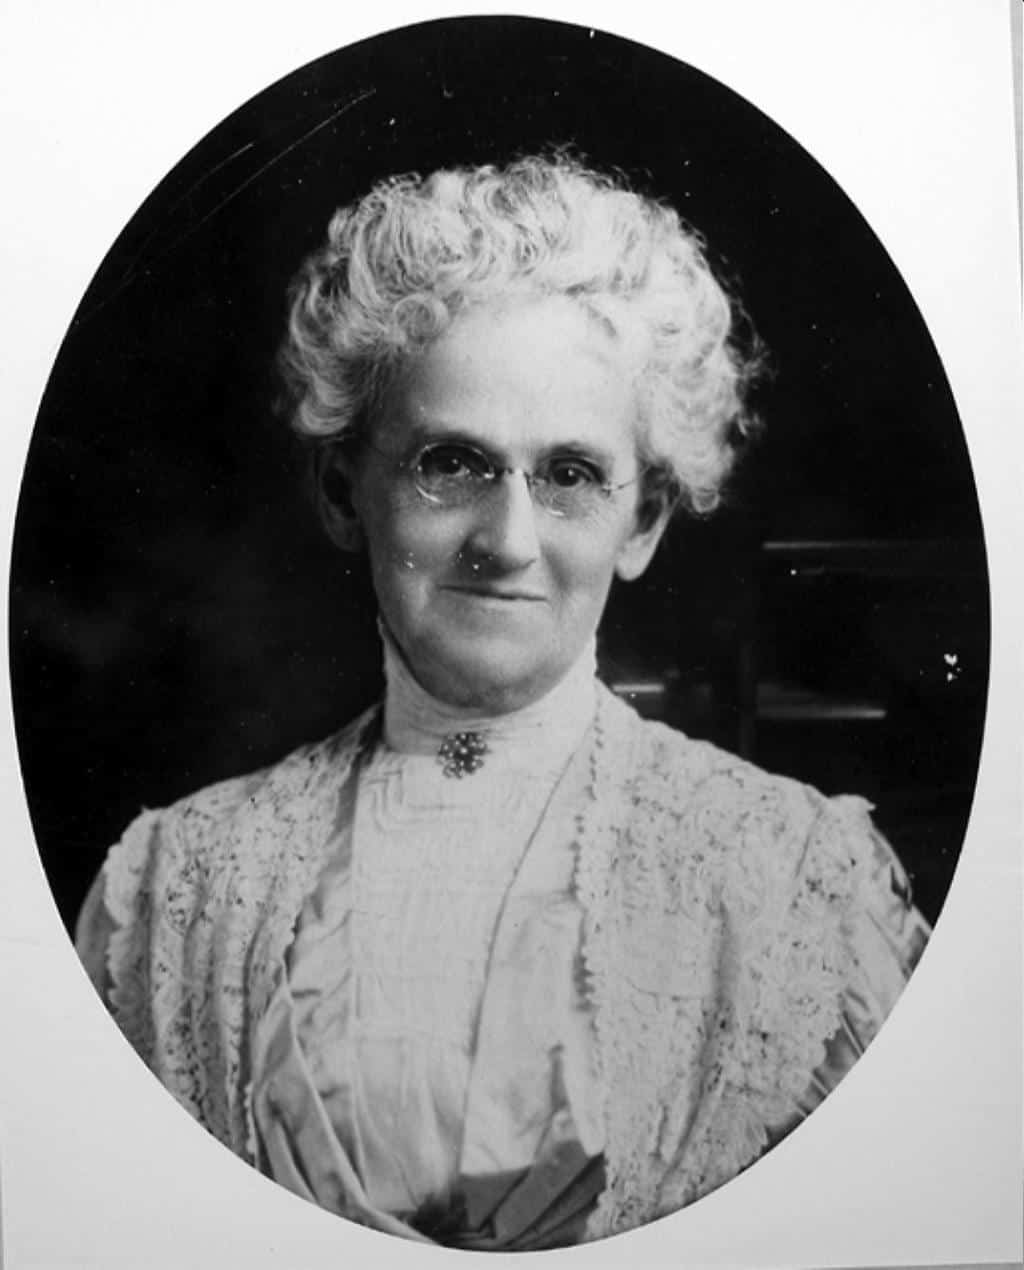 Mrs. E.B. Purcell